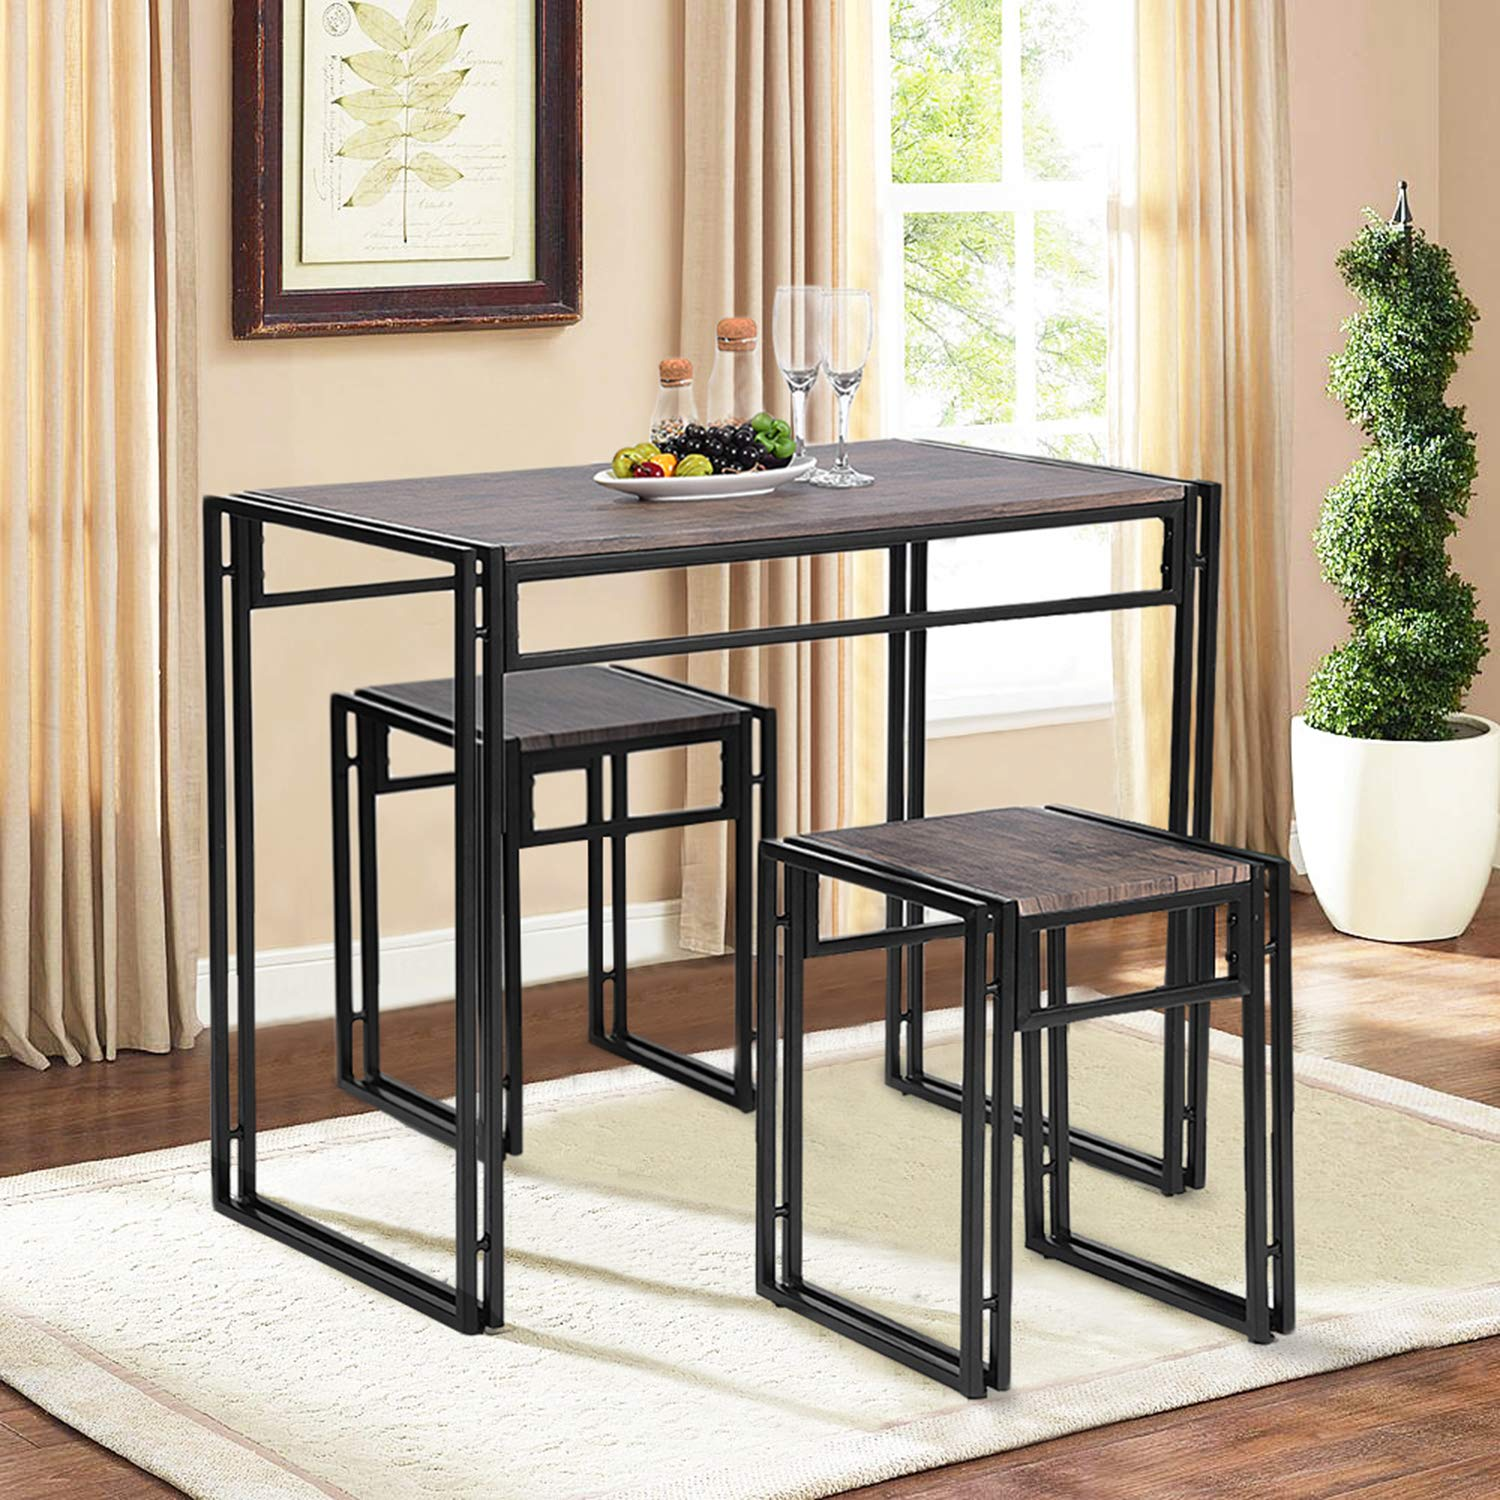 House in Box Stylish Bar Table Set Breakfast Kitchen Dining Table Essien Jm 2PCS Wooden End Chairs with Metal Legs